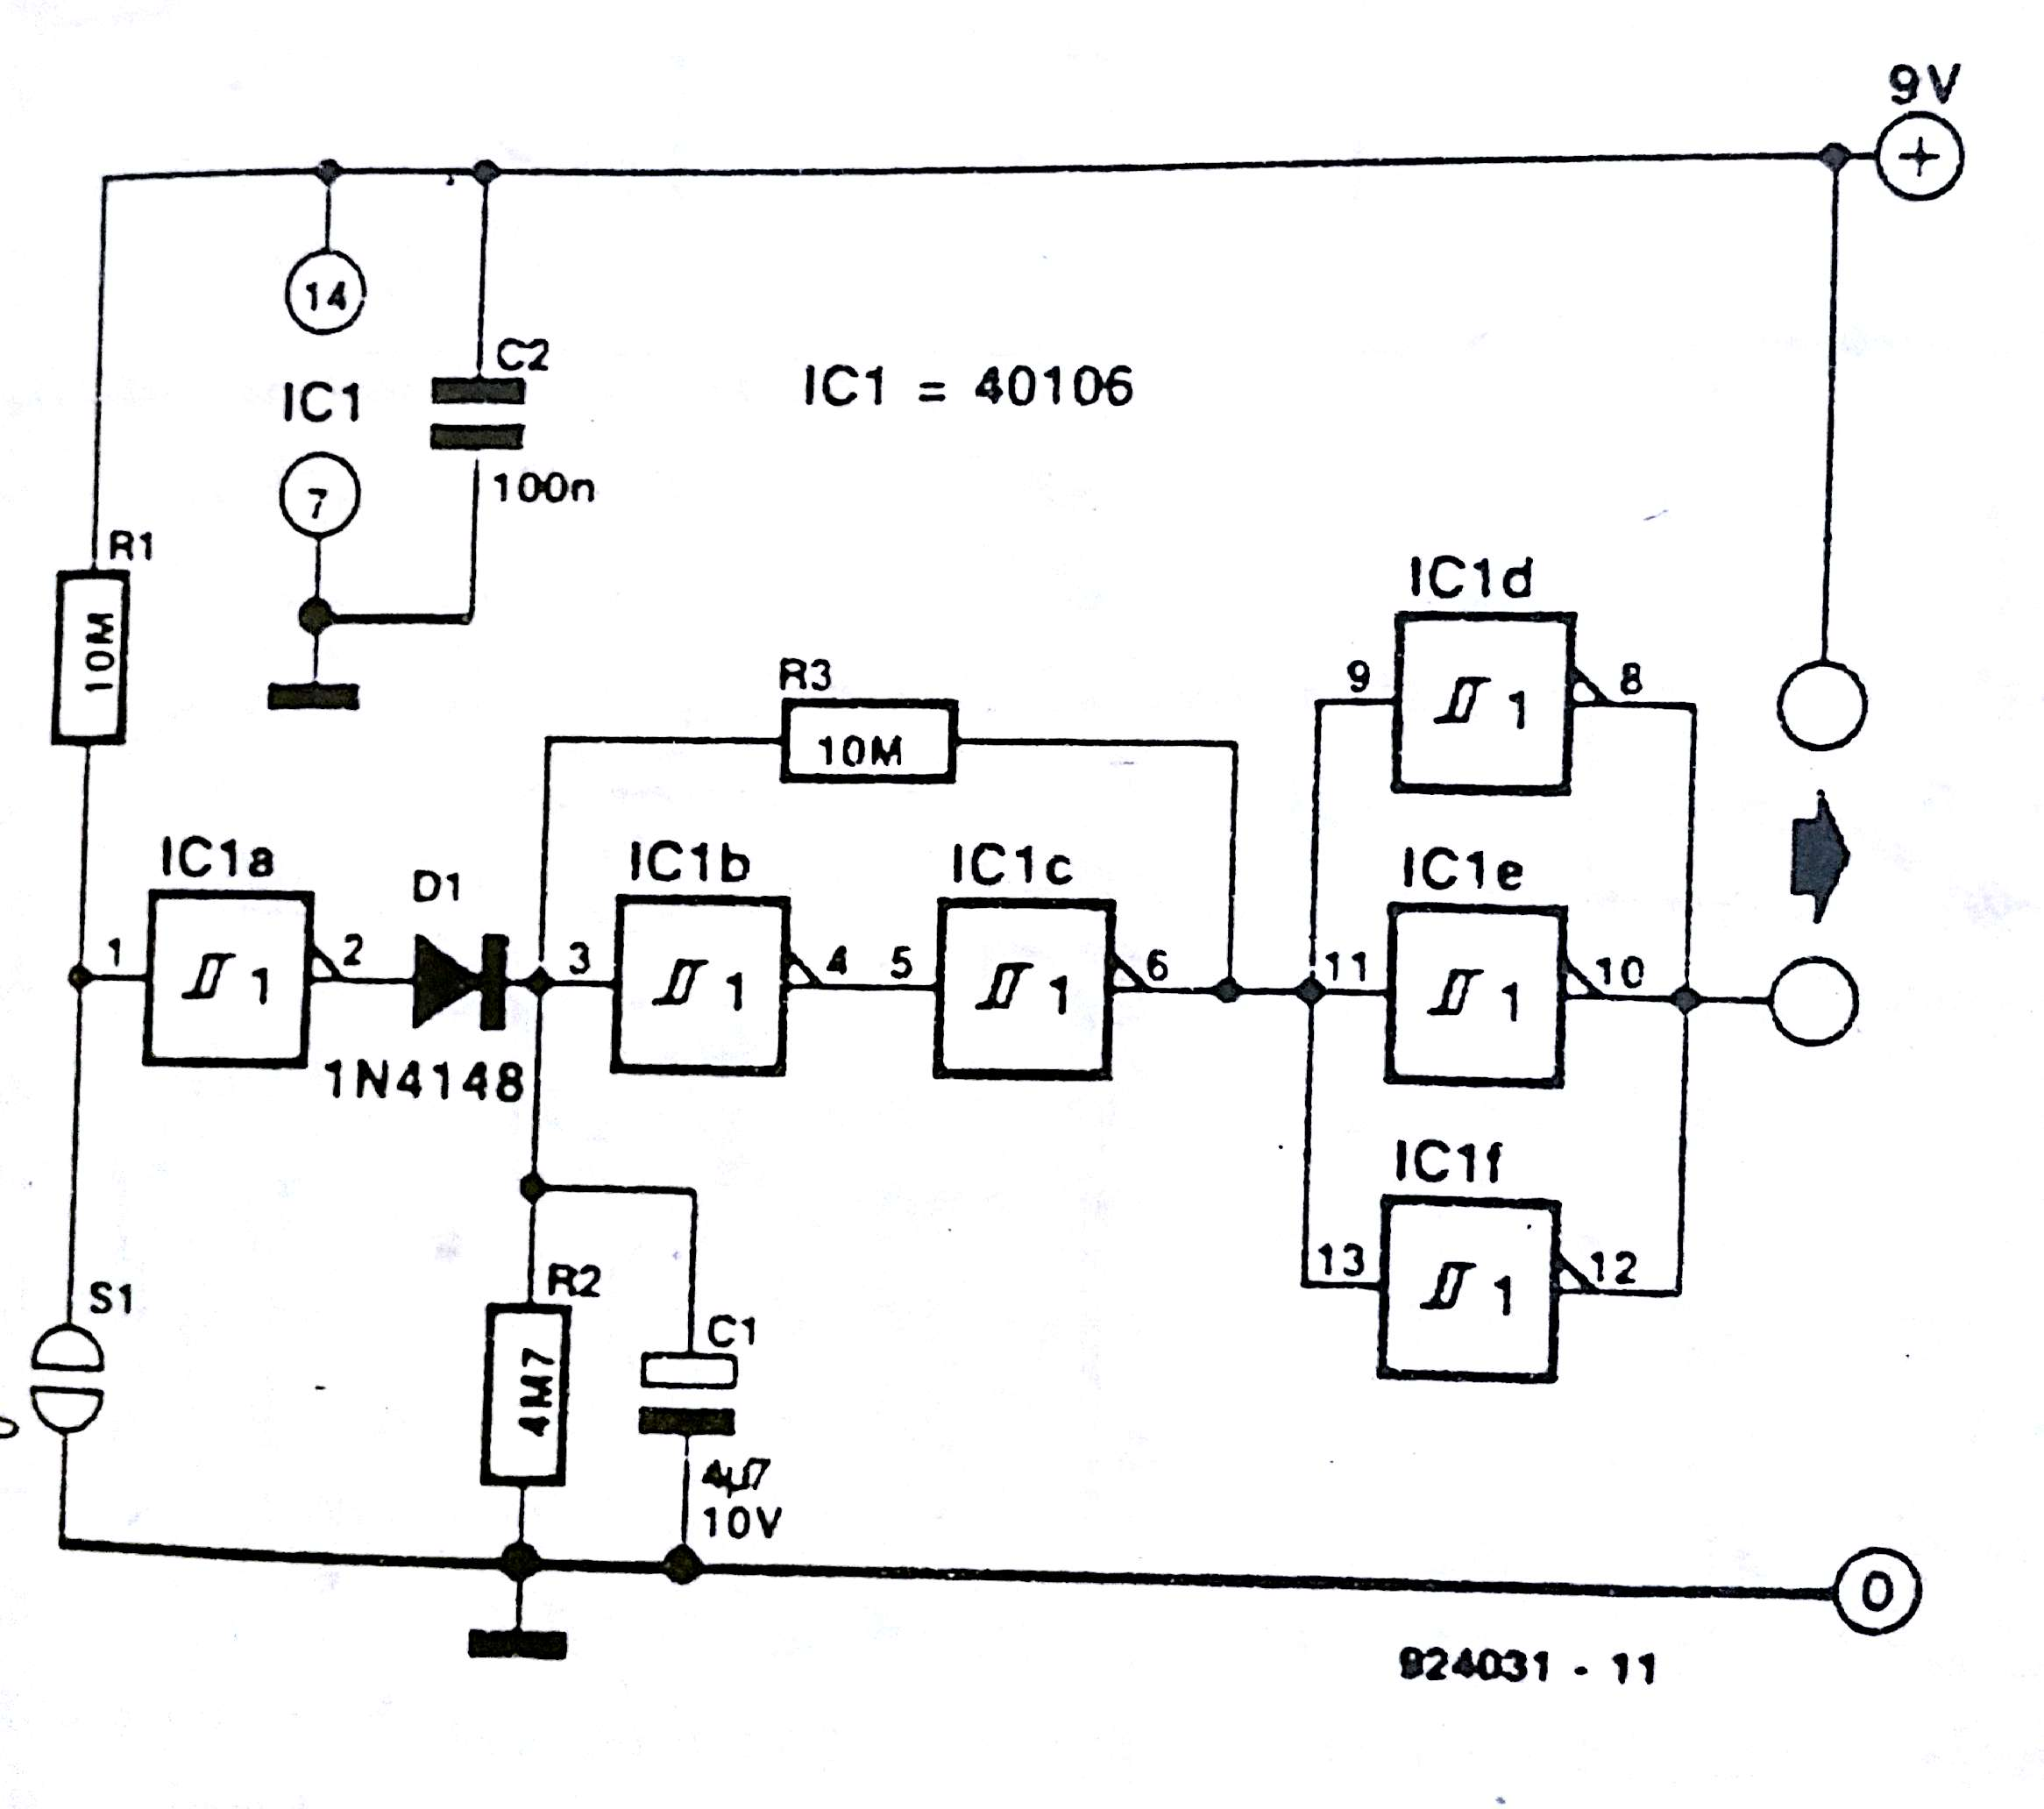 relay pr380 schematic wiring diagram wrg 4838  rainbow se series vacuum wiring diagram  rainbow se series vacuum wiring diagram